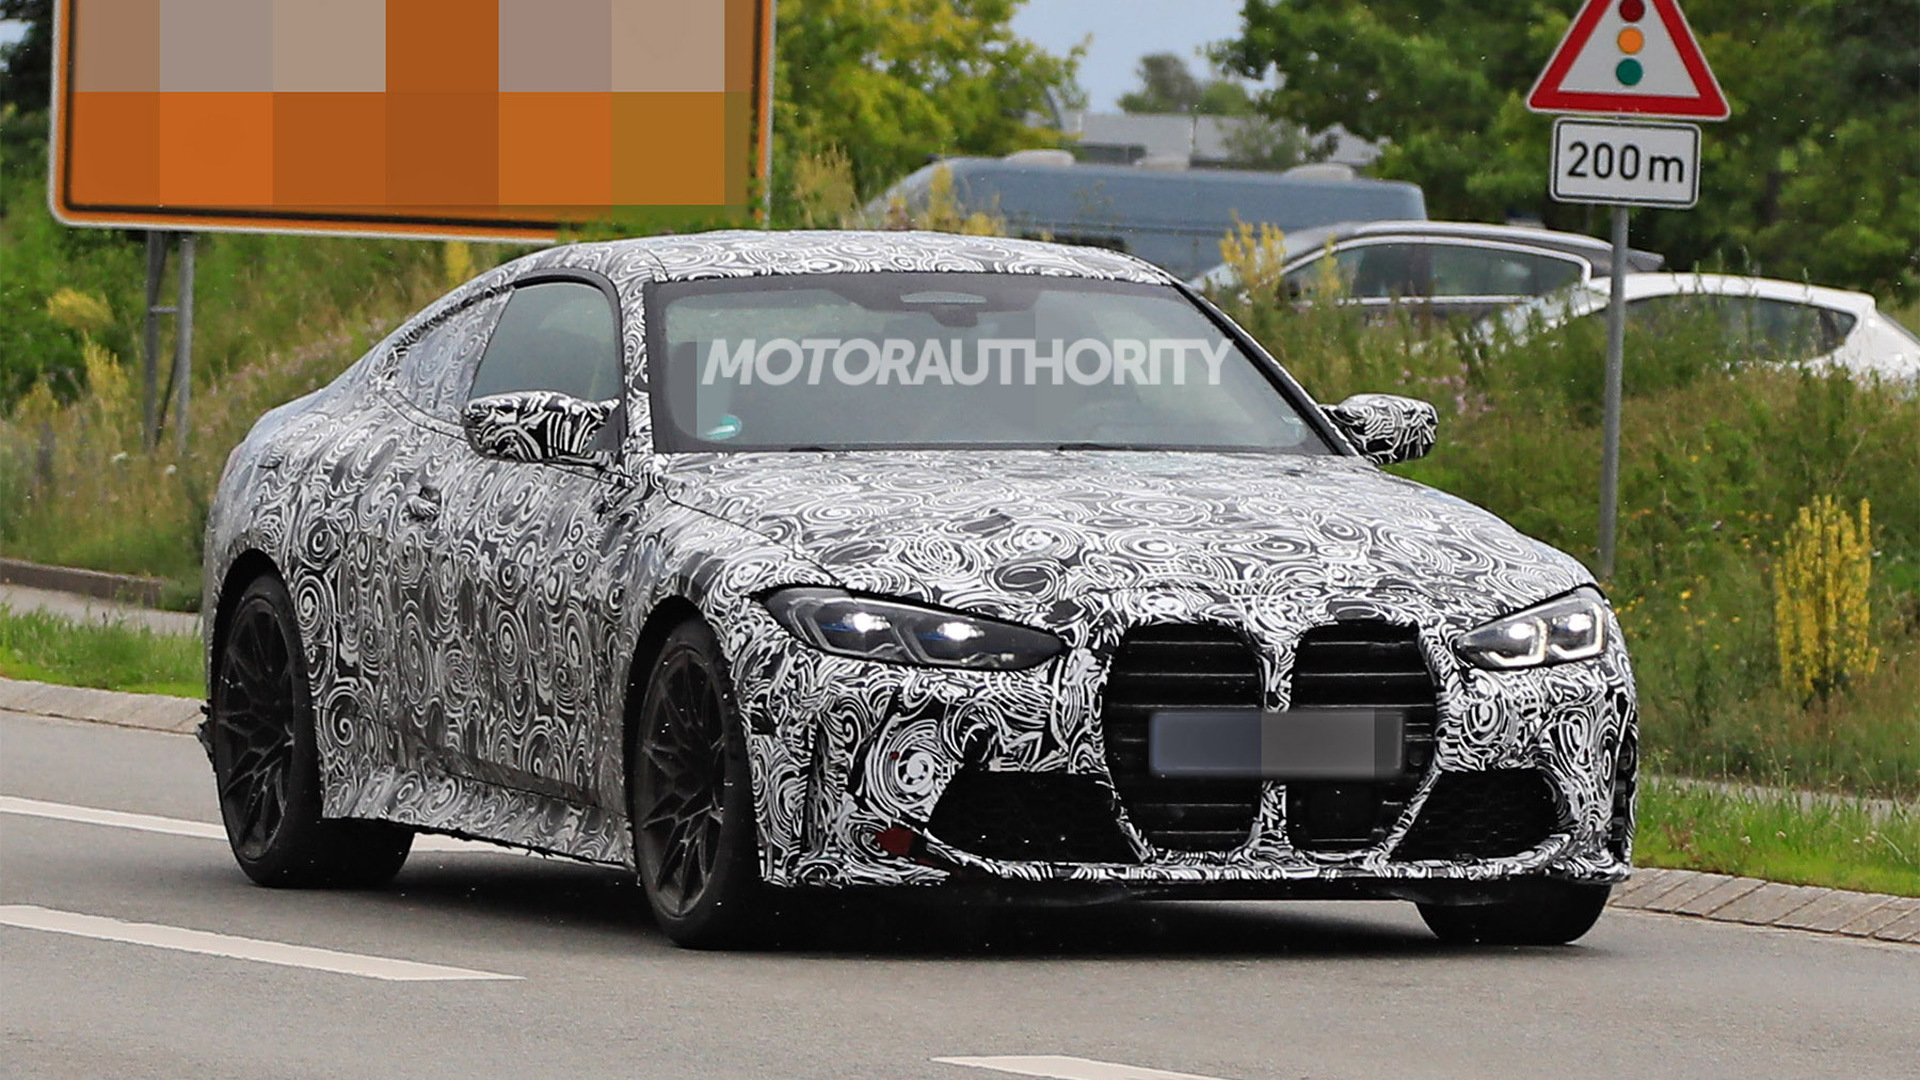 2021 BMW M4 spy shots - Photo credit: S. Baldauf/SB-Medien